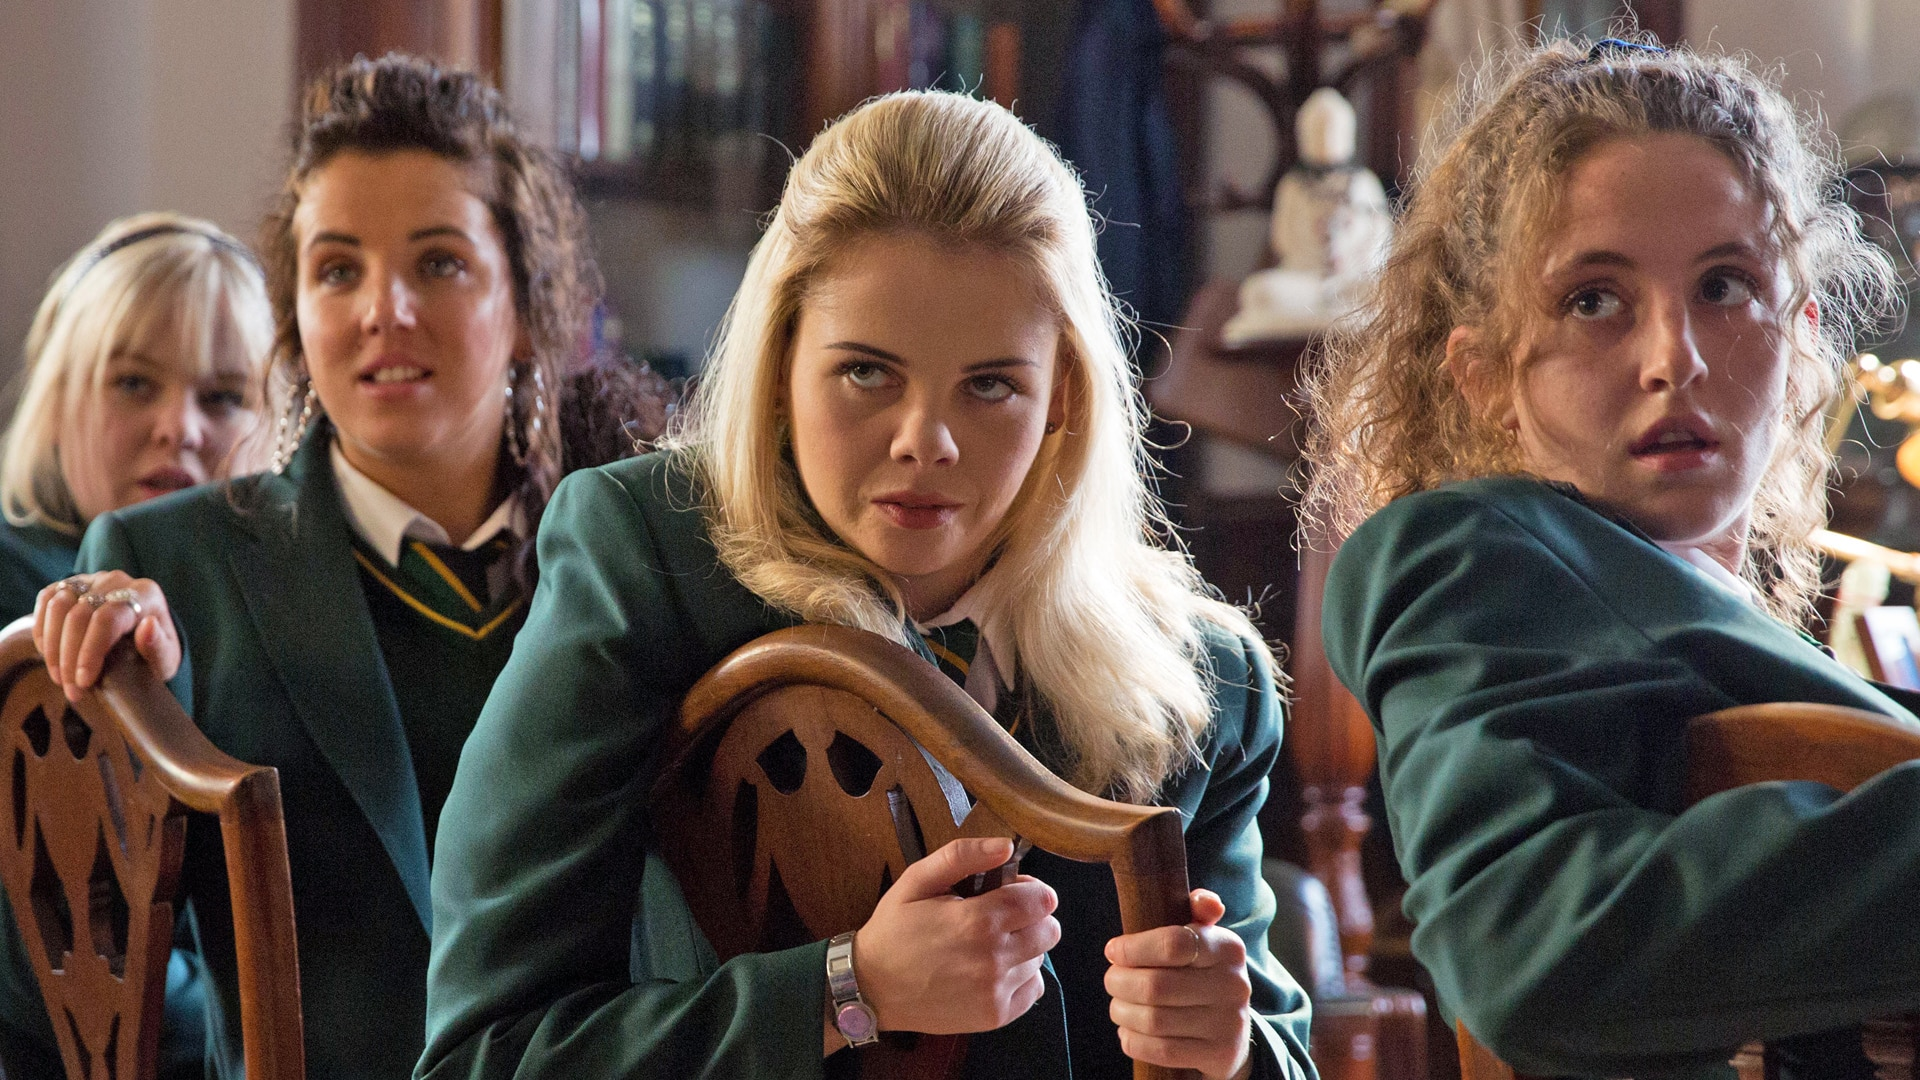 new derry girls 20052018 the crystal maze returns next month with all-new celebrity specials maze master richard ayoade will guide a glittering array of fearless famous faces.